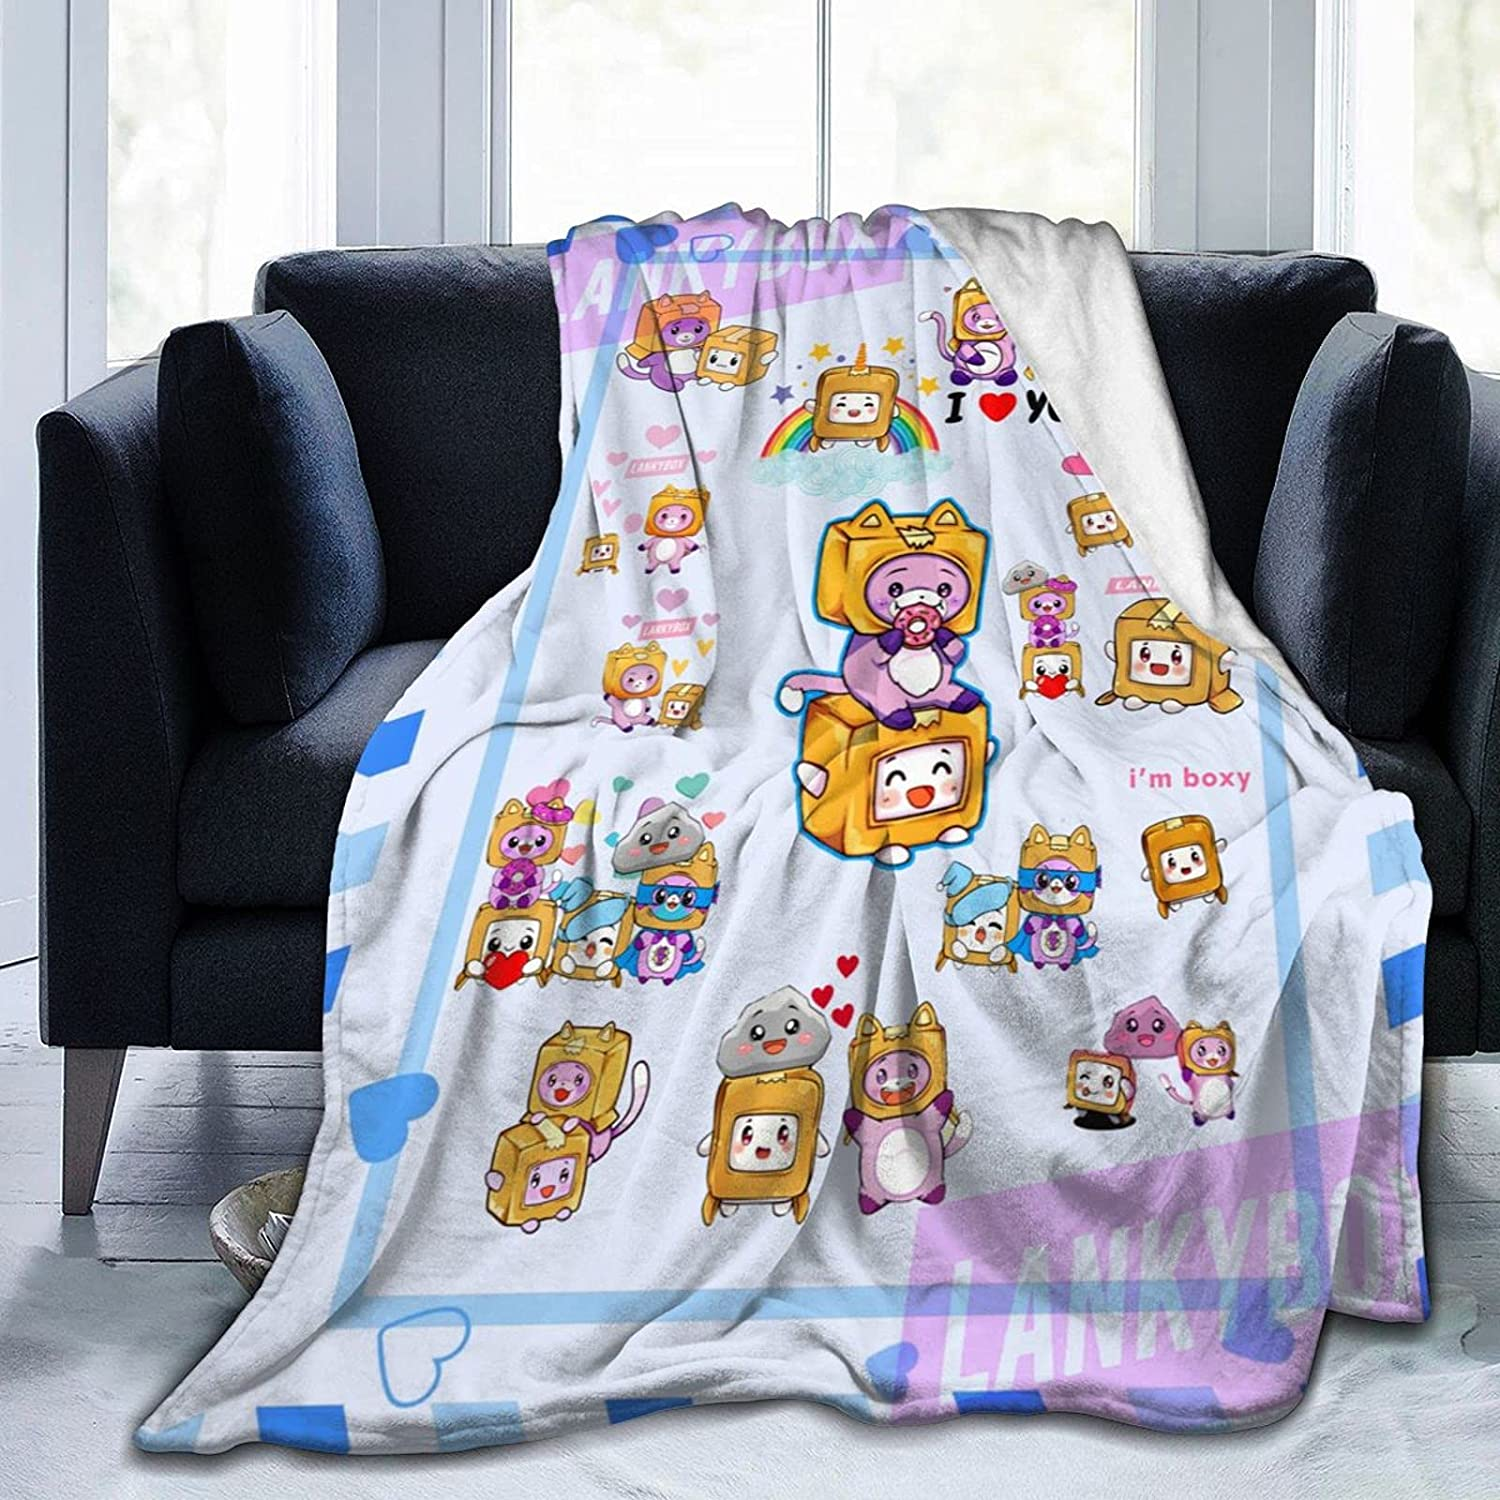 Phoenix Mall Foxy and Boxy Blanket Ultra Soft Todd favorite Lining Fleece for Flannel